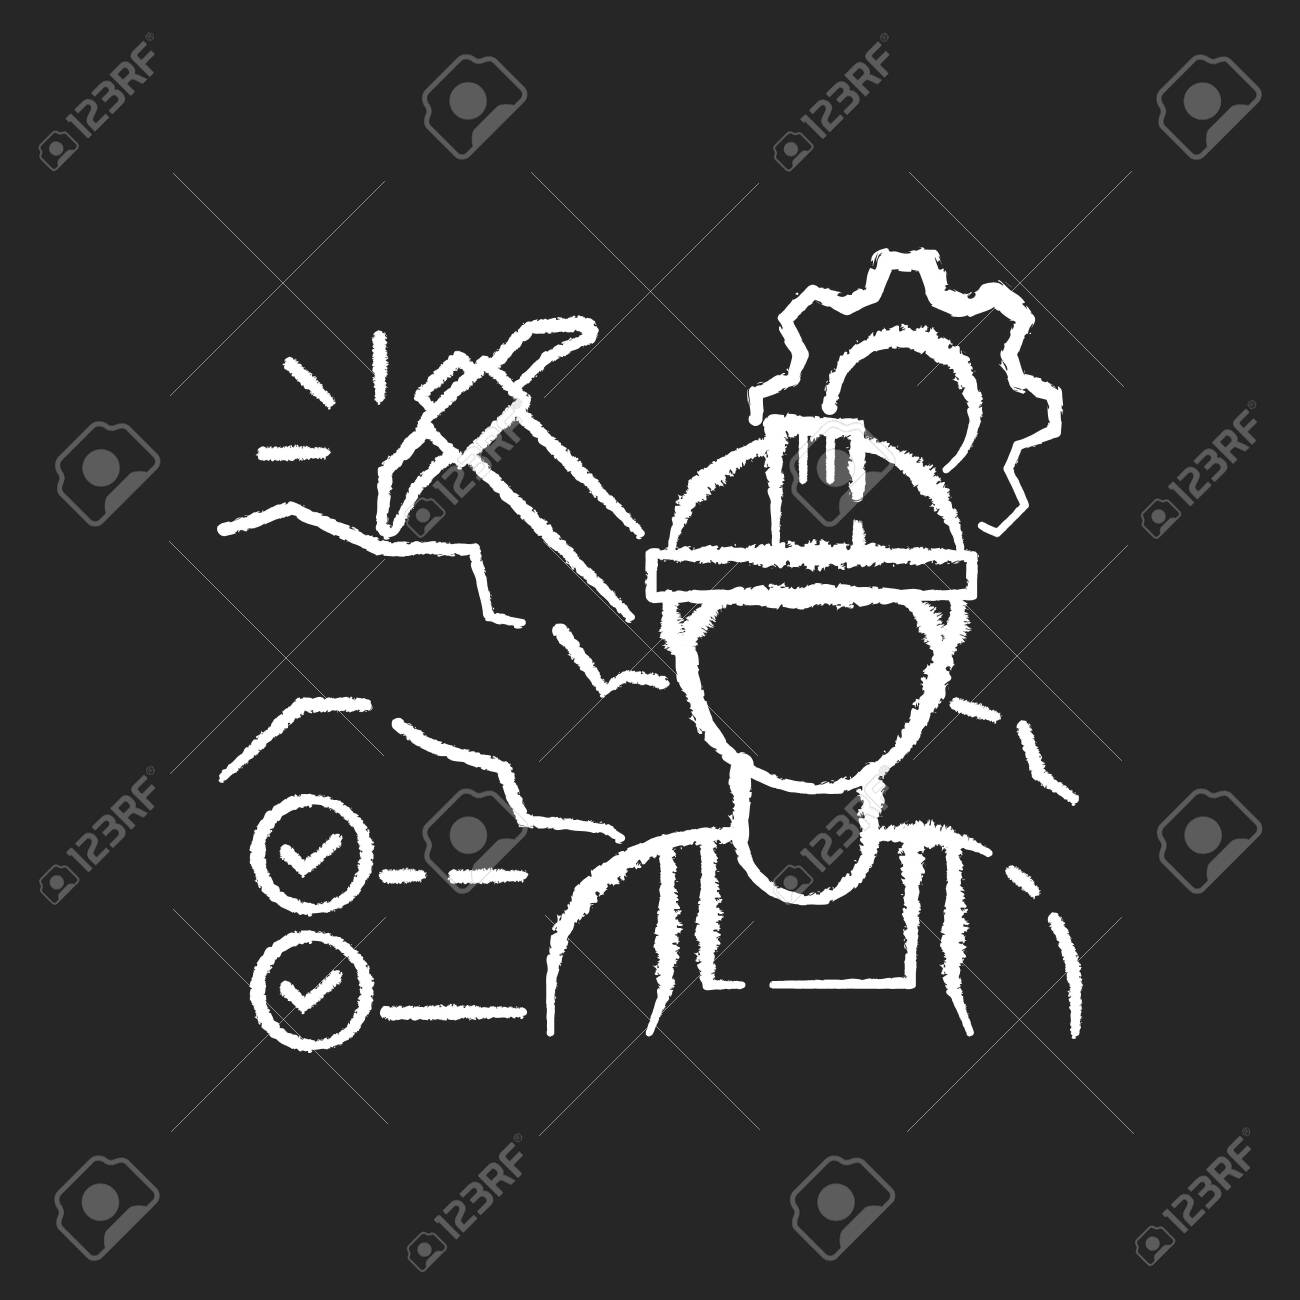 Mining Engineer Chalk White Icon On Black Background Heavy Manufacturing Royalty Free Cliparts Vectors And Stock Illustration Image 148805559